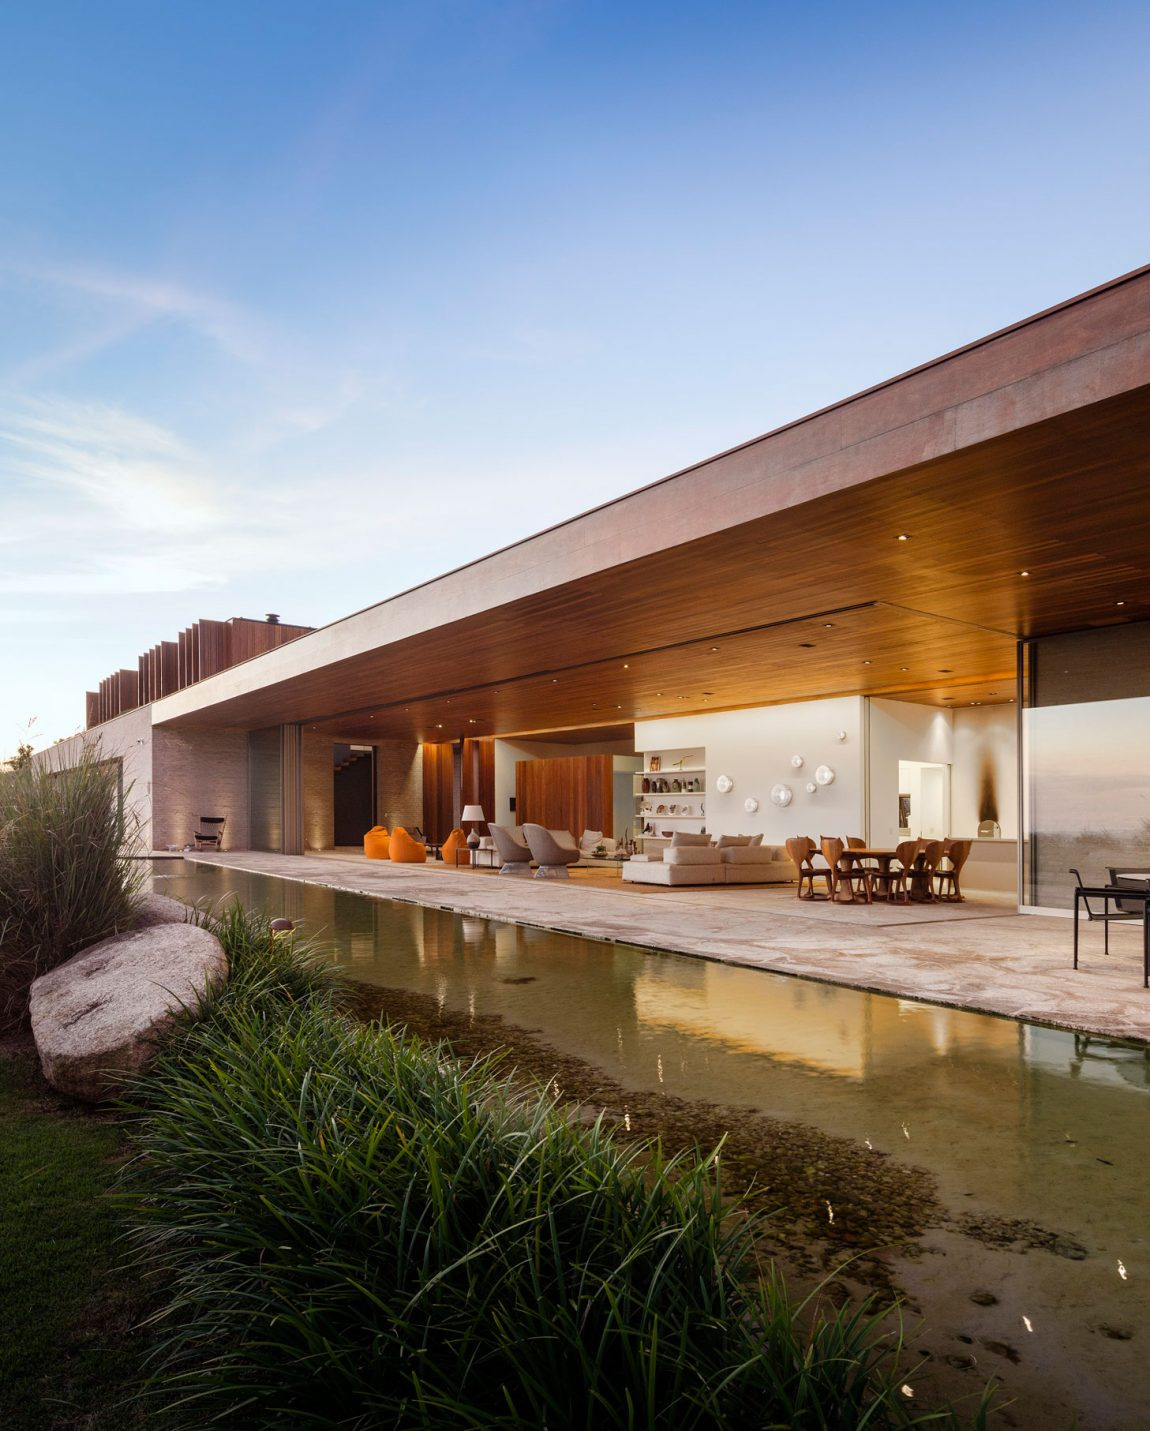 Contemporary house in sao paulo brazil with an amazing outdoor living space